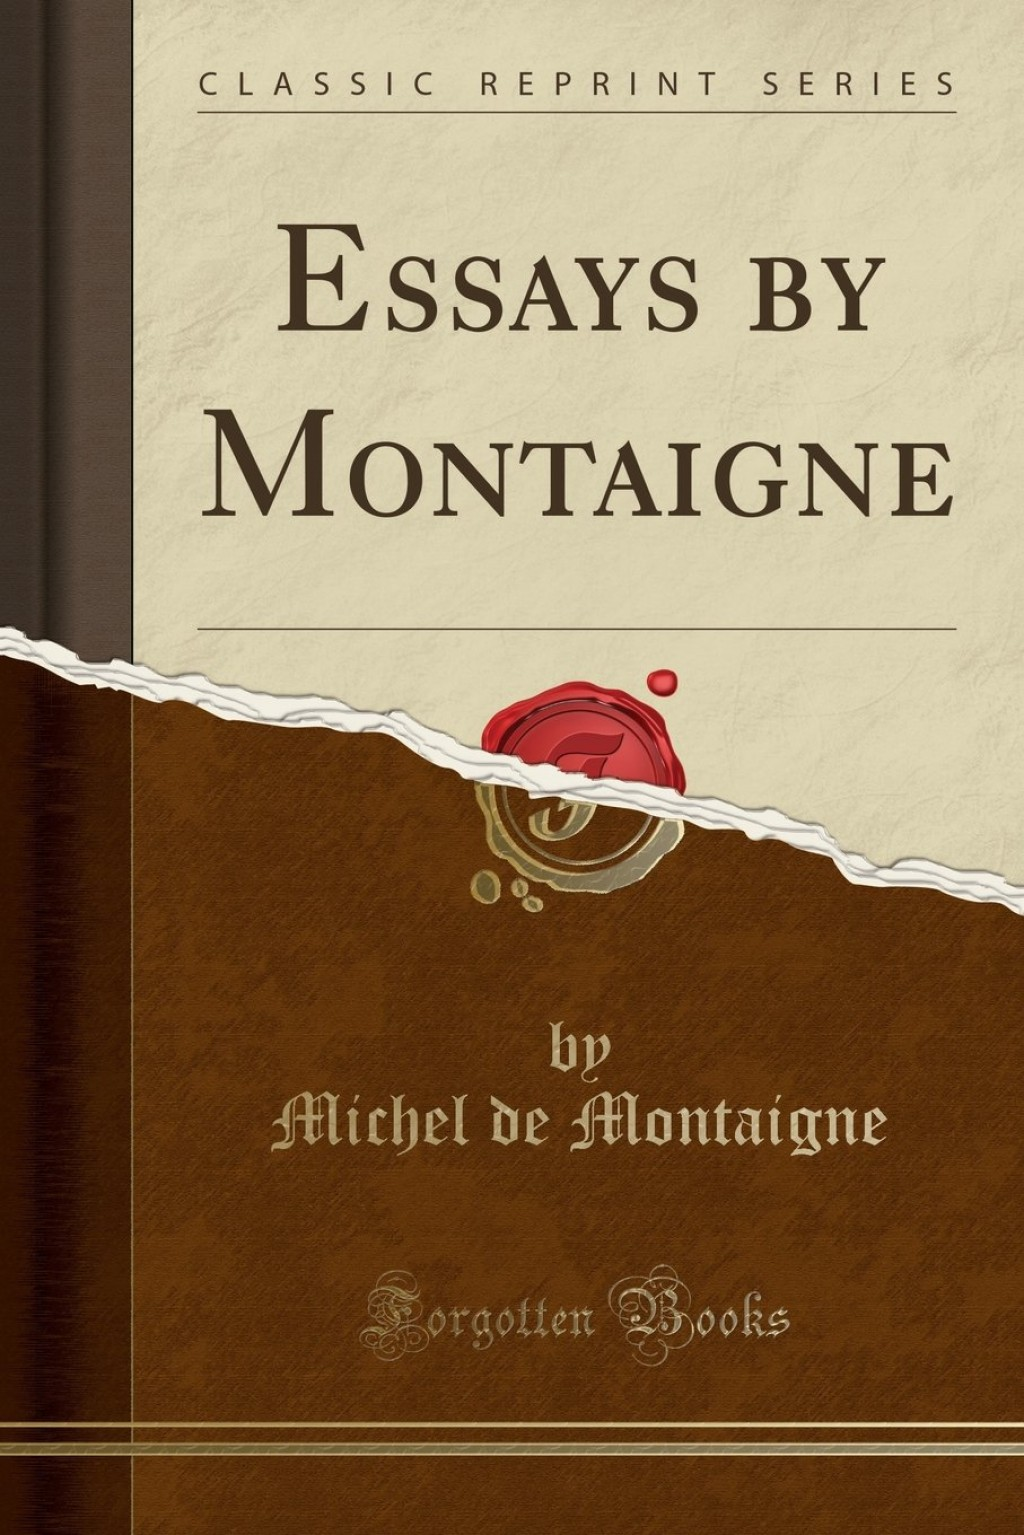 025 Montaigne Essays 715ojuza7al Essay Archaicawful Summary On Experience Quotes Best Translation Large